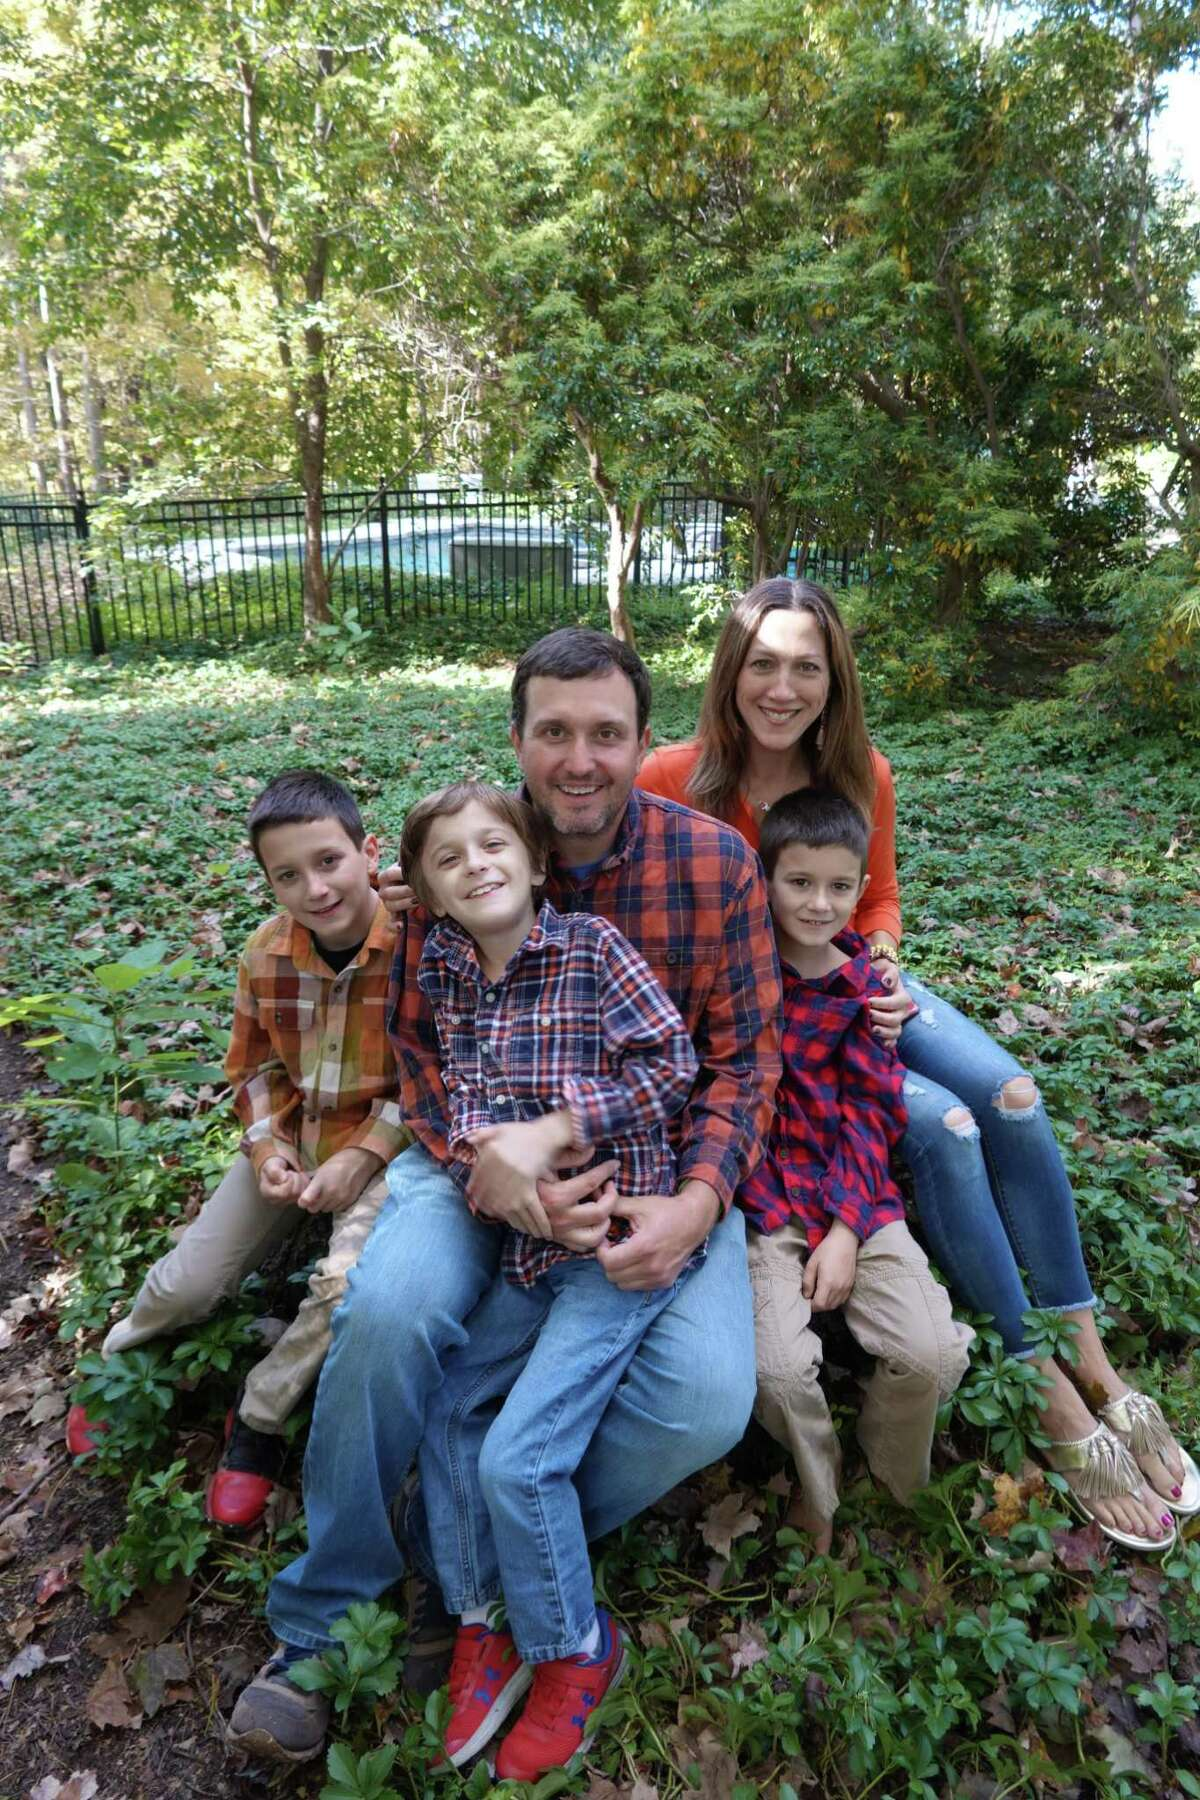 The Curran family: from left, Kyle, Conner, Chris, Jessica and William.